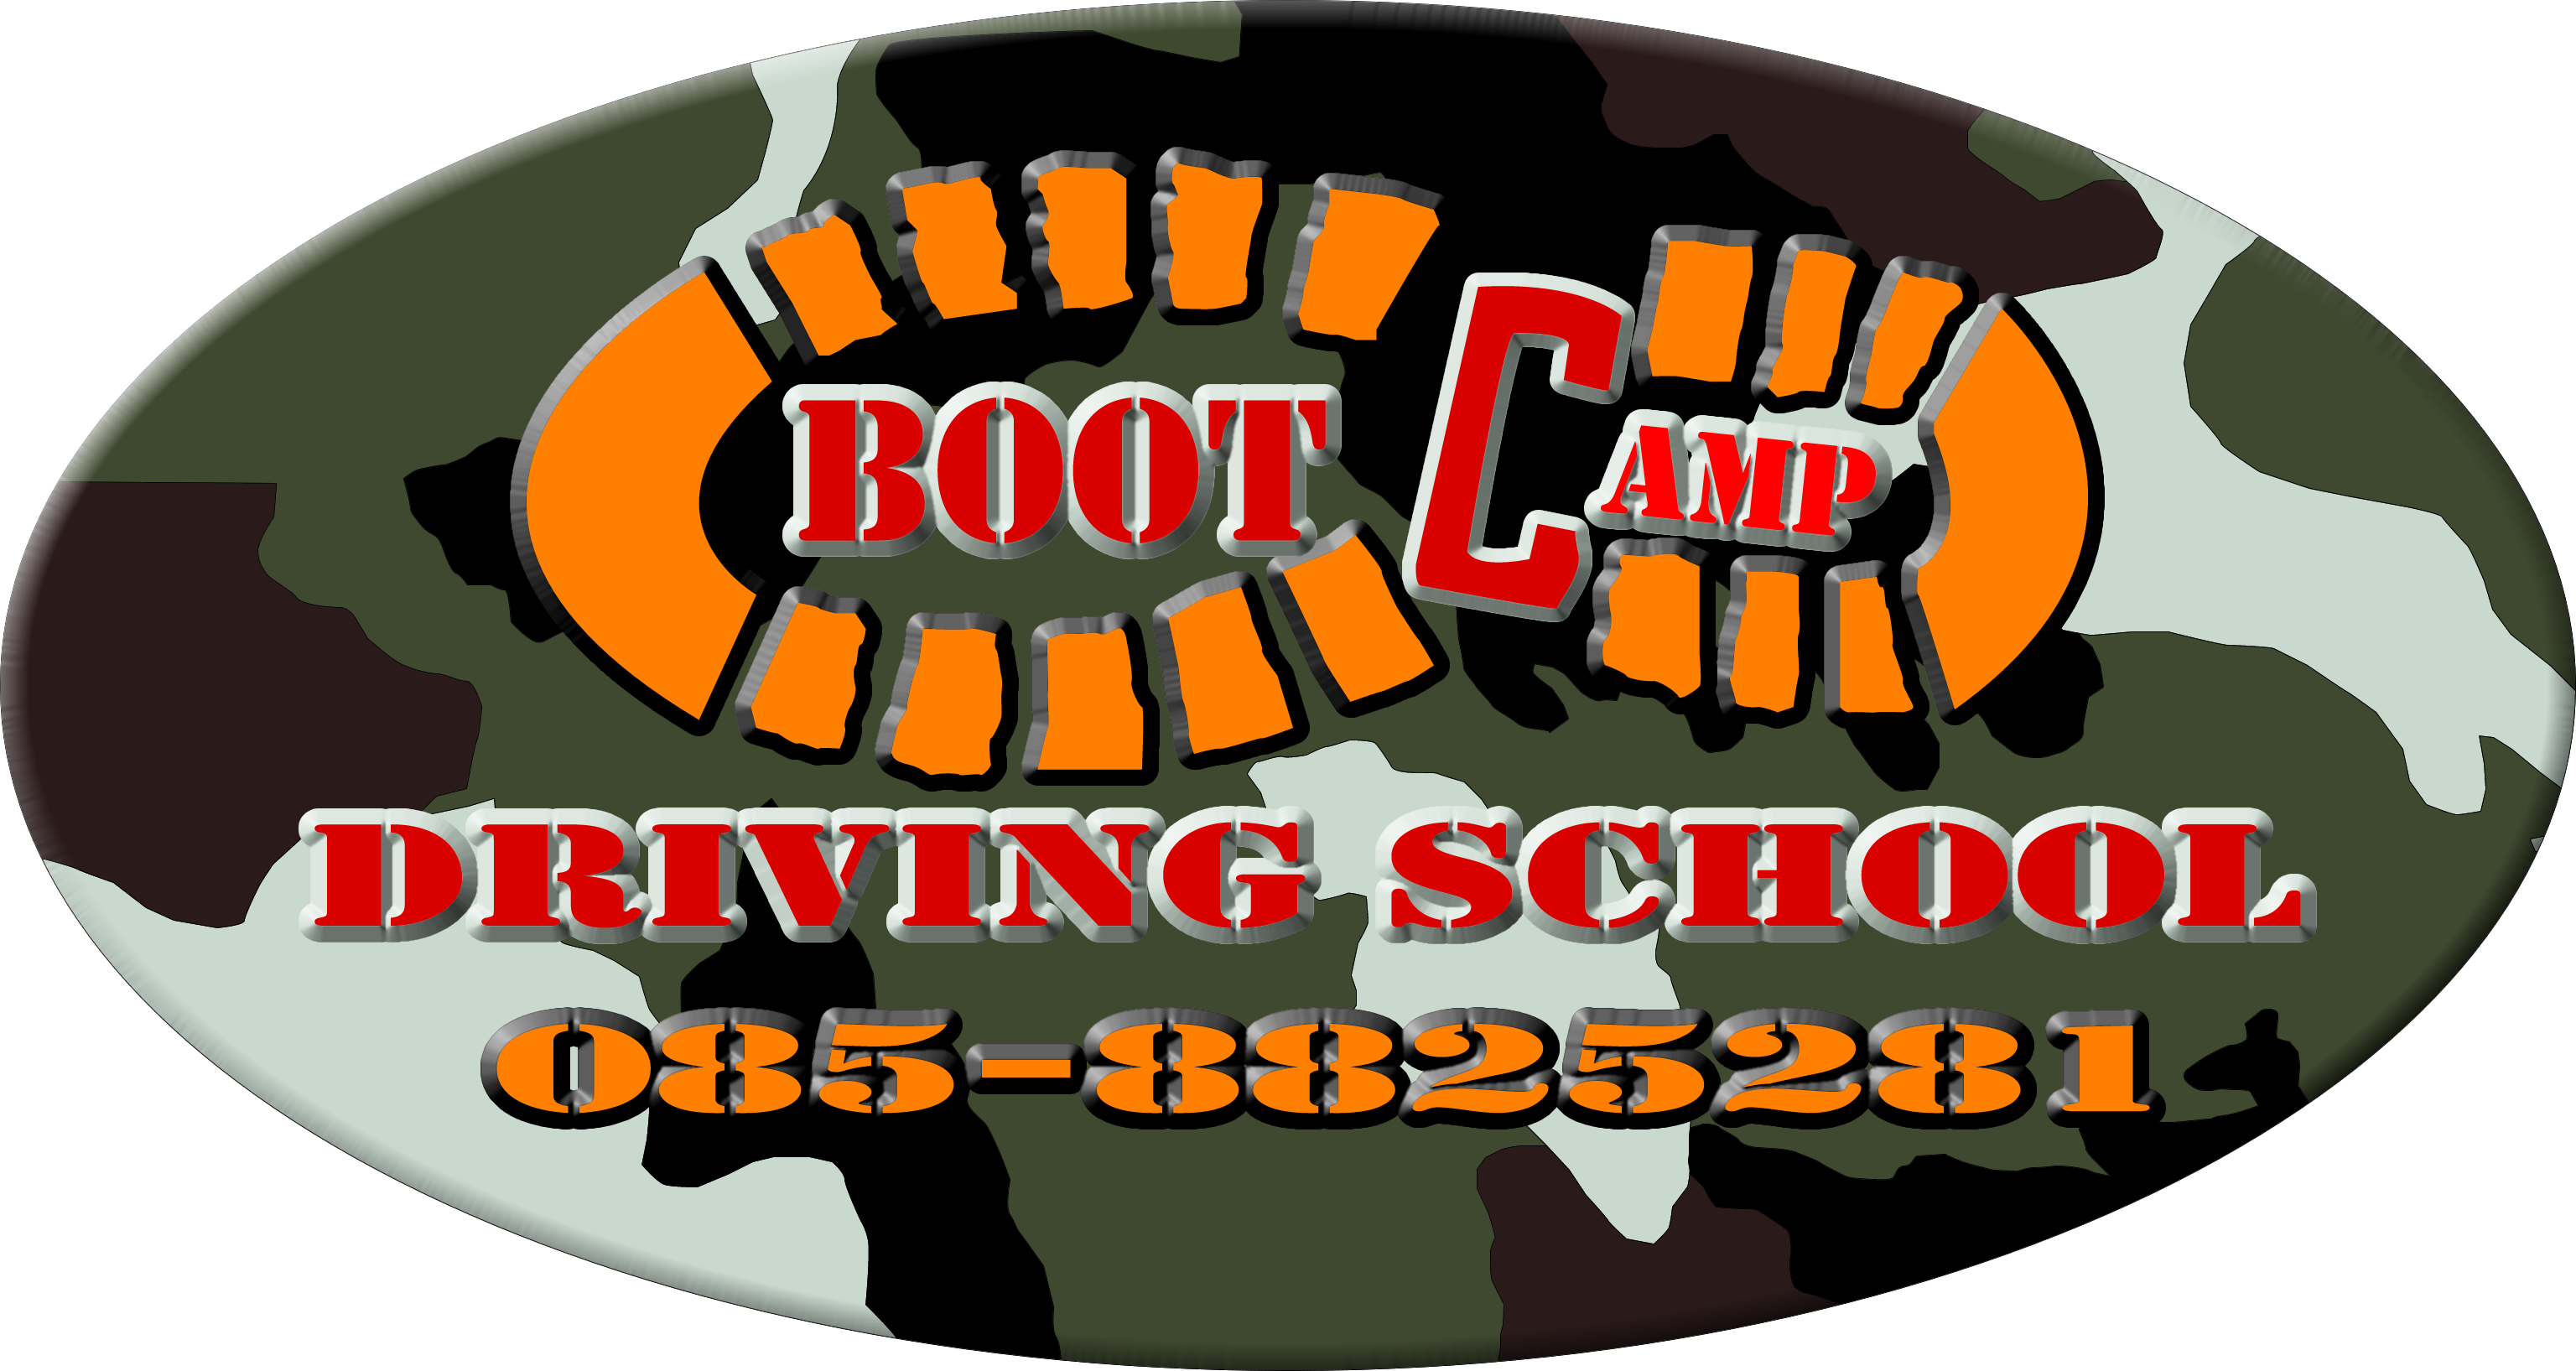 Bootcamp Driving School